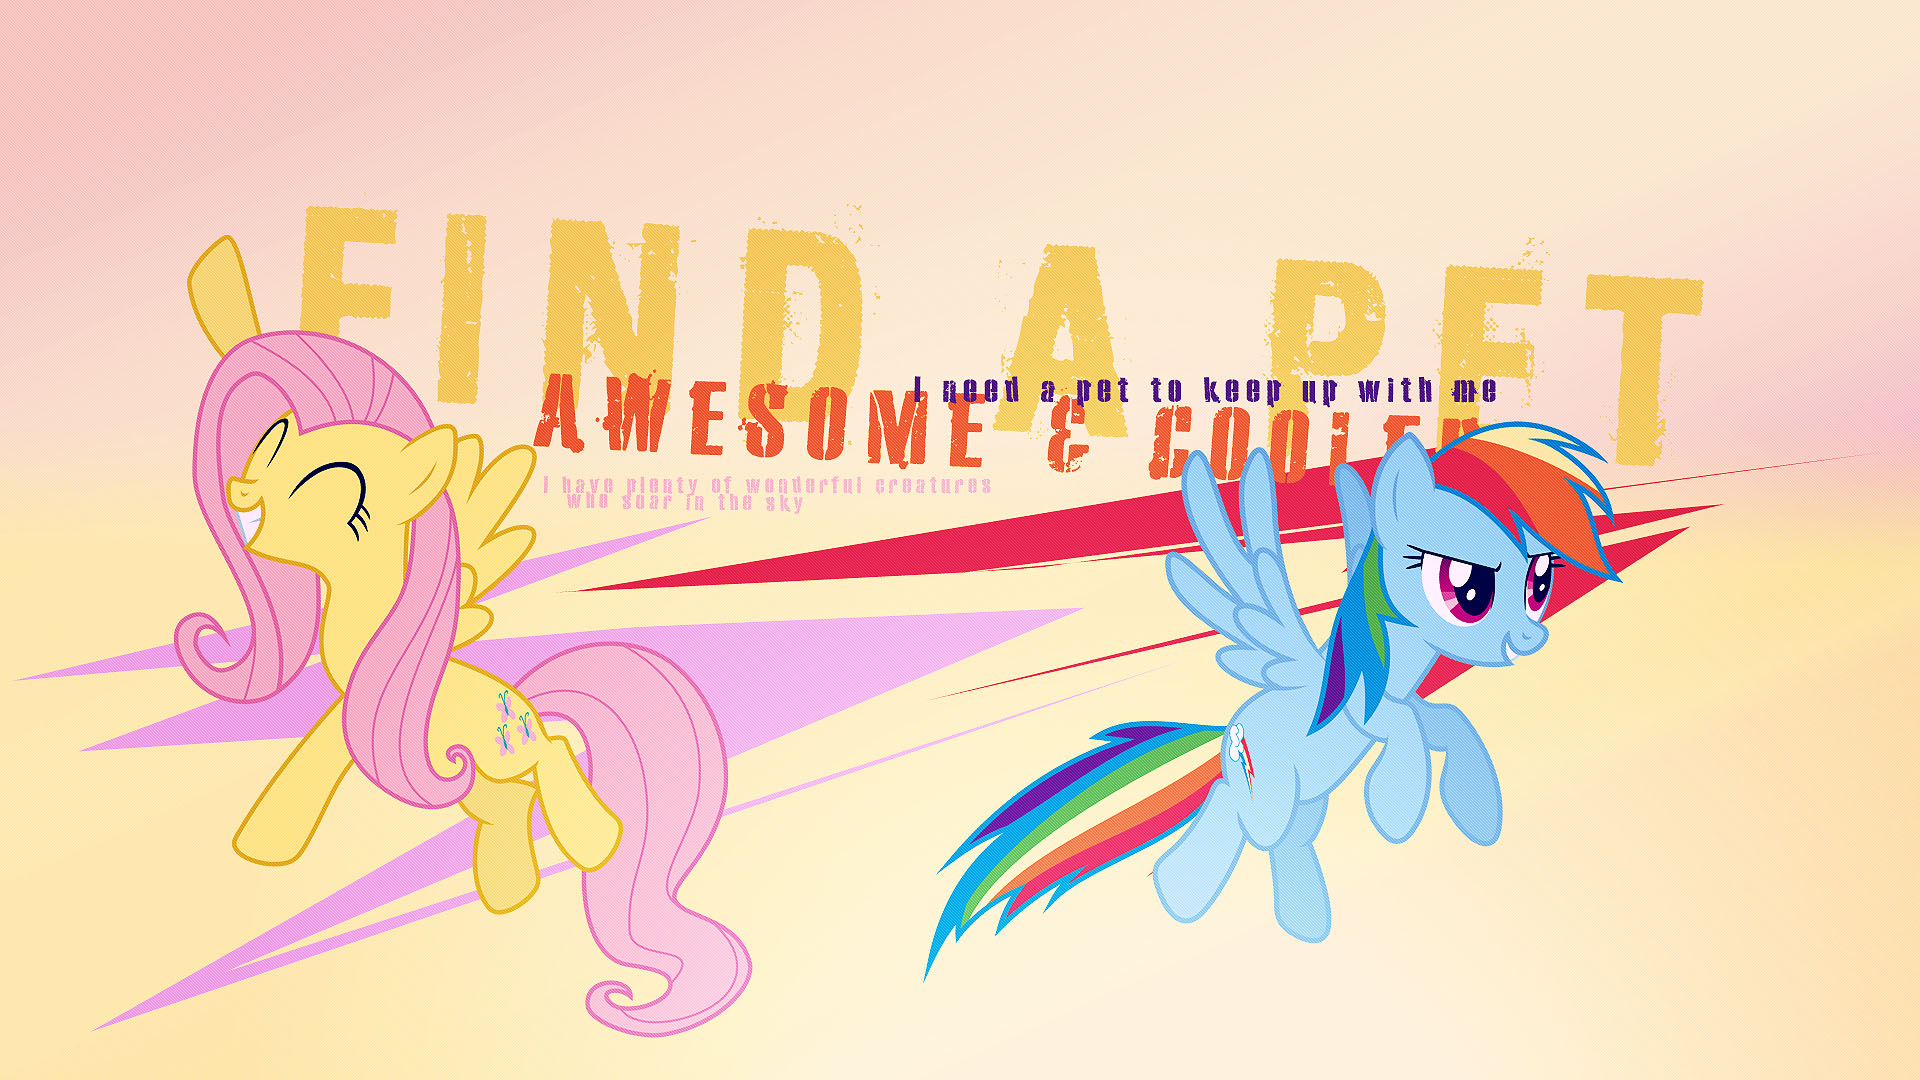 Find a Pet Wallpaper by X-Celestia-X, xPesifeindx and Xtrl